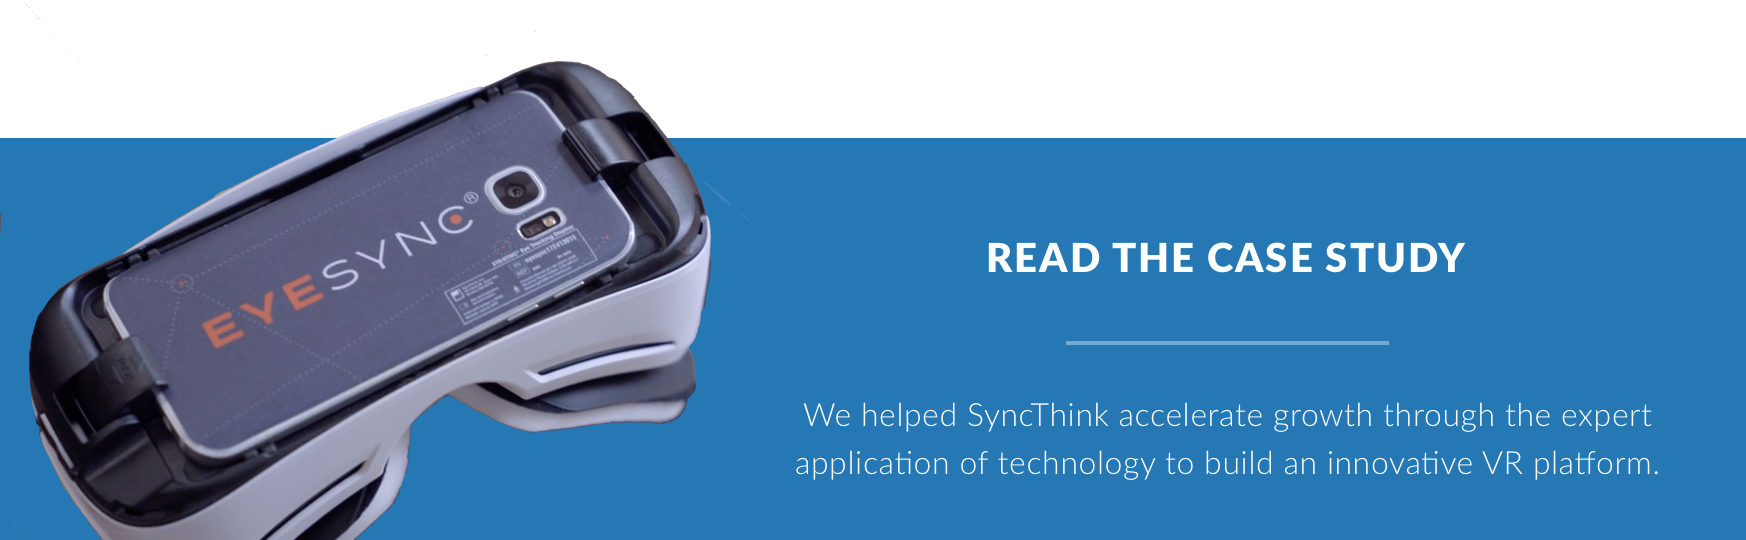 Read the SyncThink case study